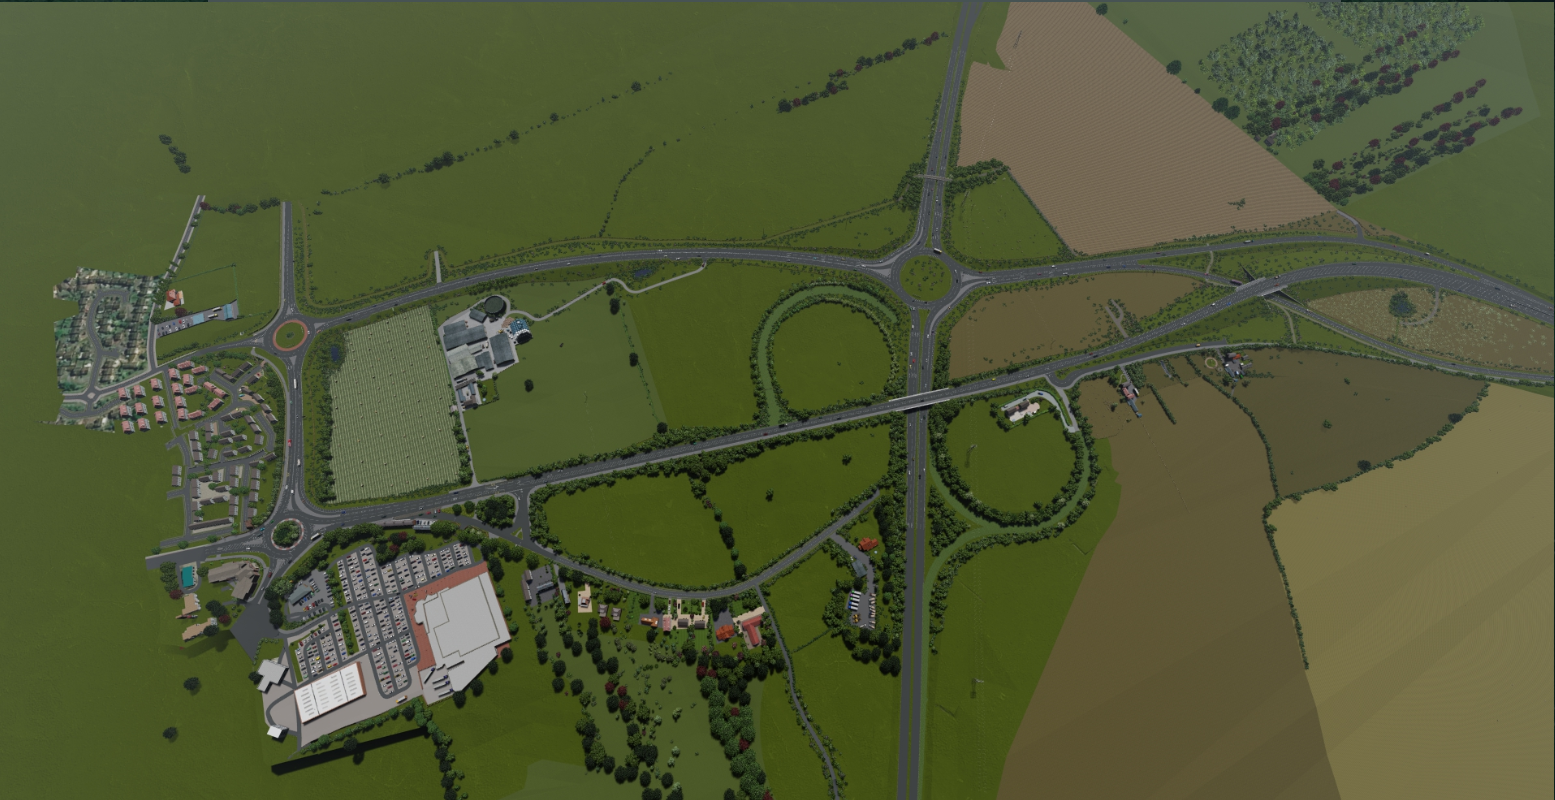 Aerial view of the proposed A164 Jocks Lodge Improvement Scheme at Jocks Lodge